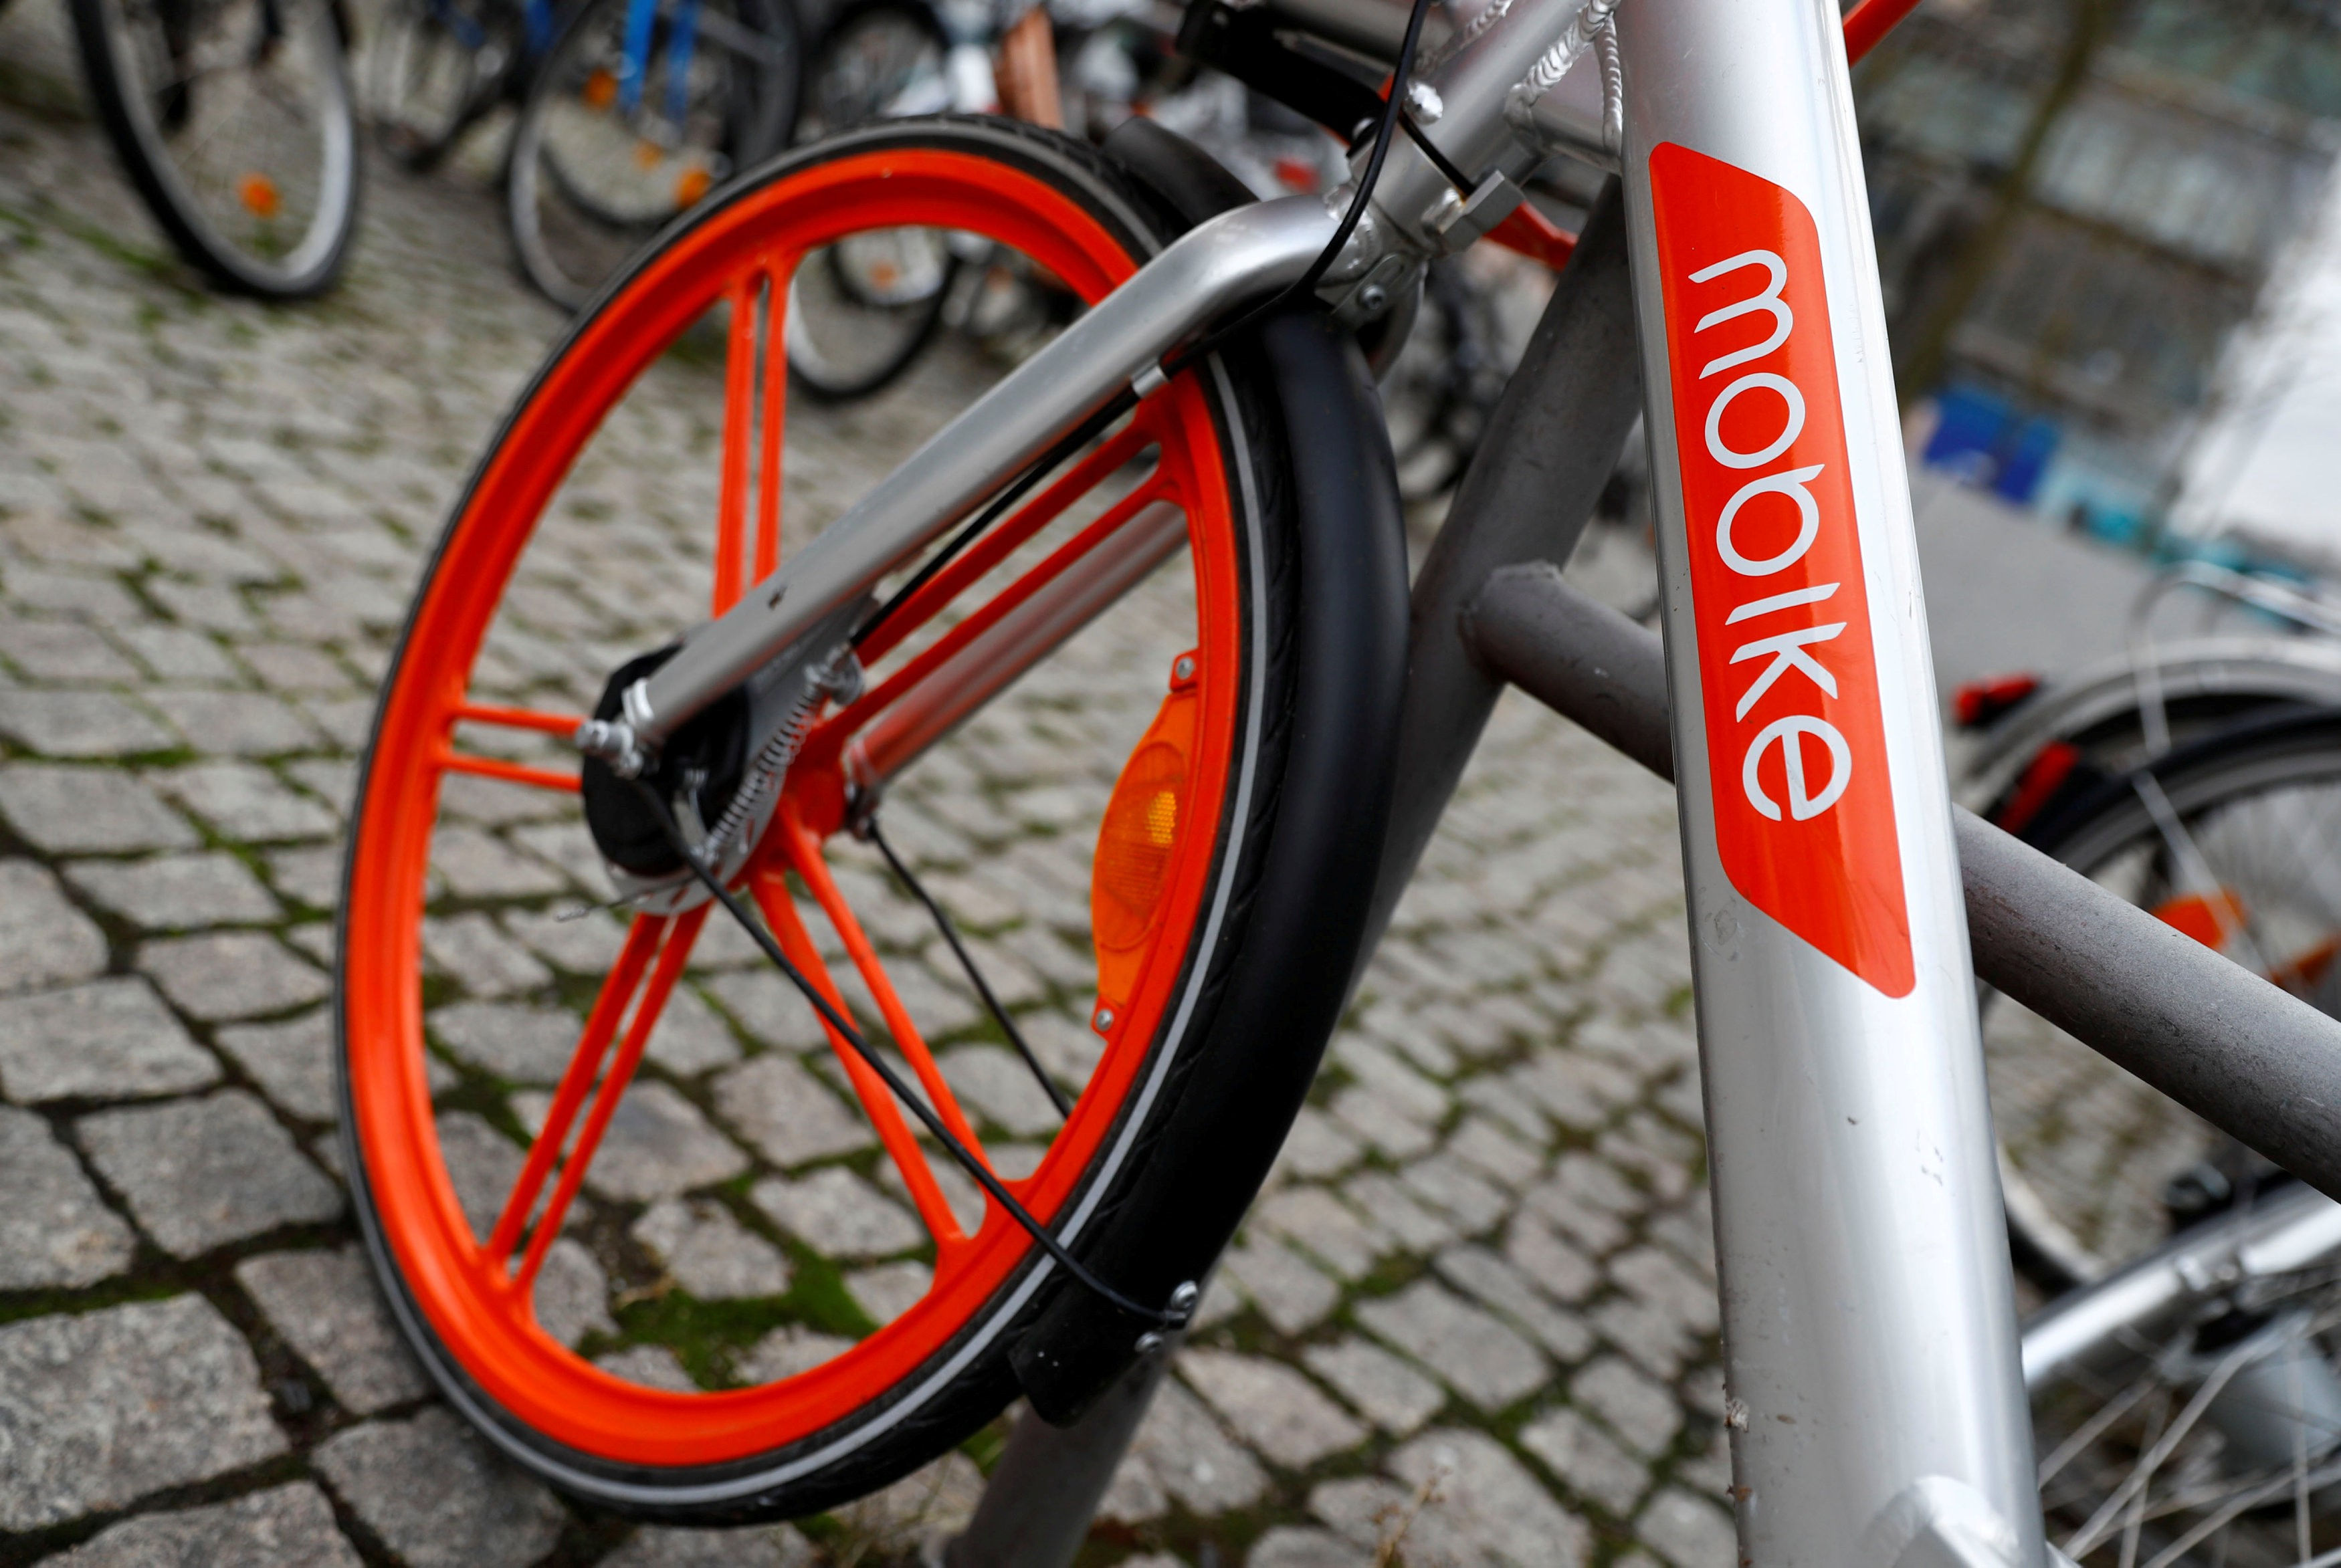 Alibaba confirms it is mulling further investment in bike